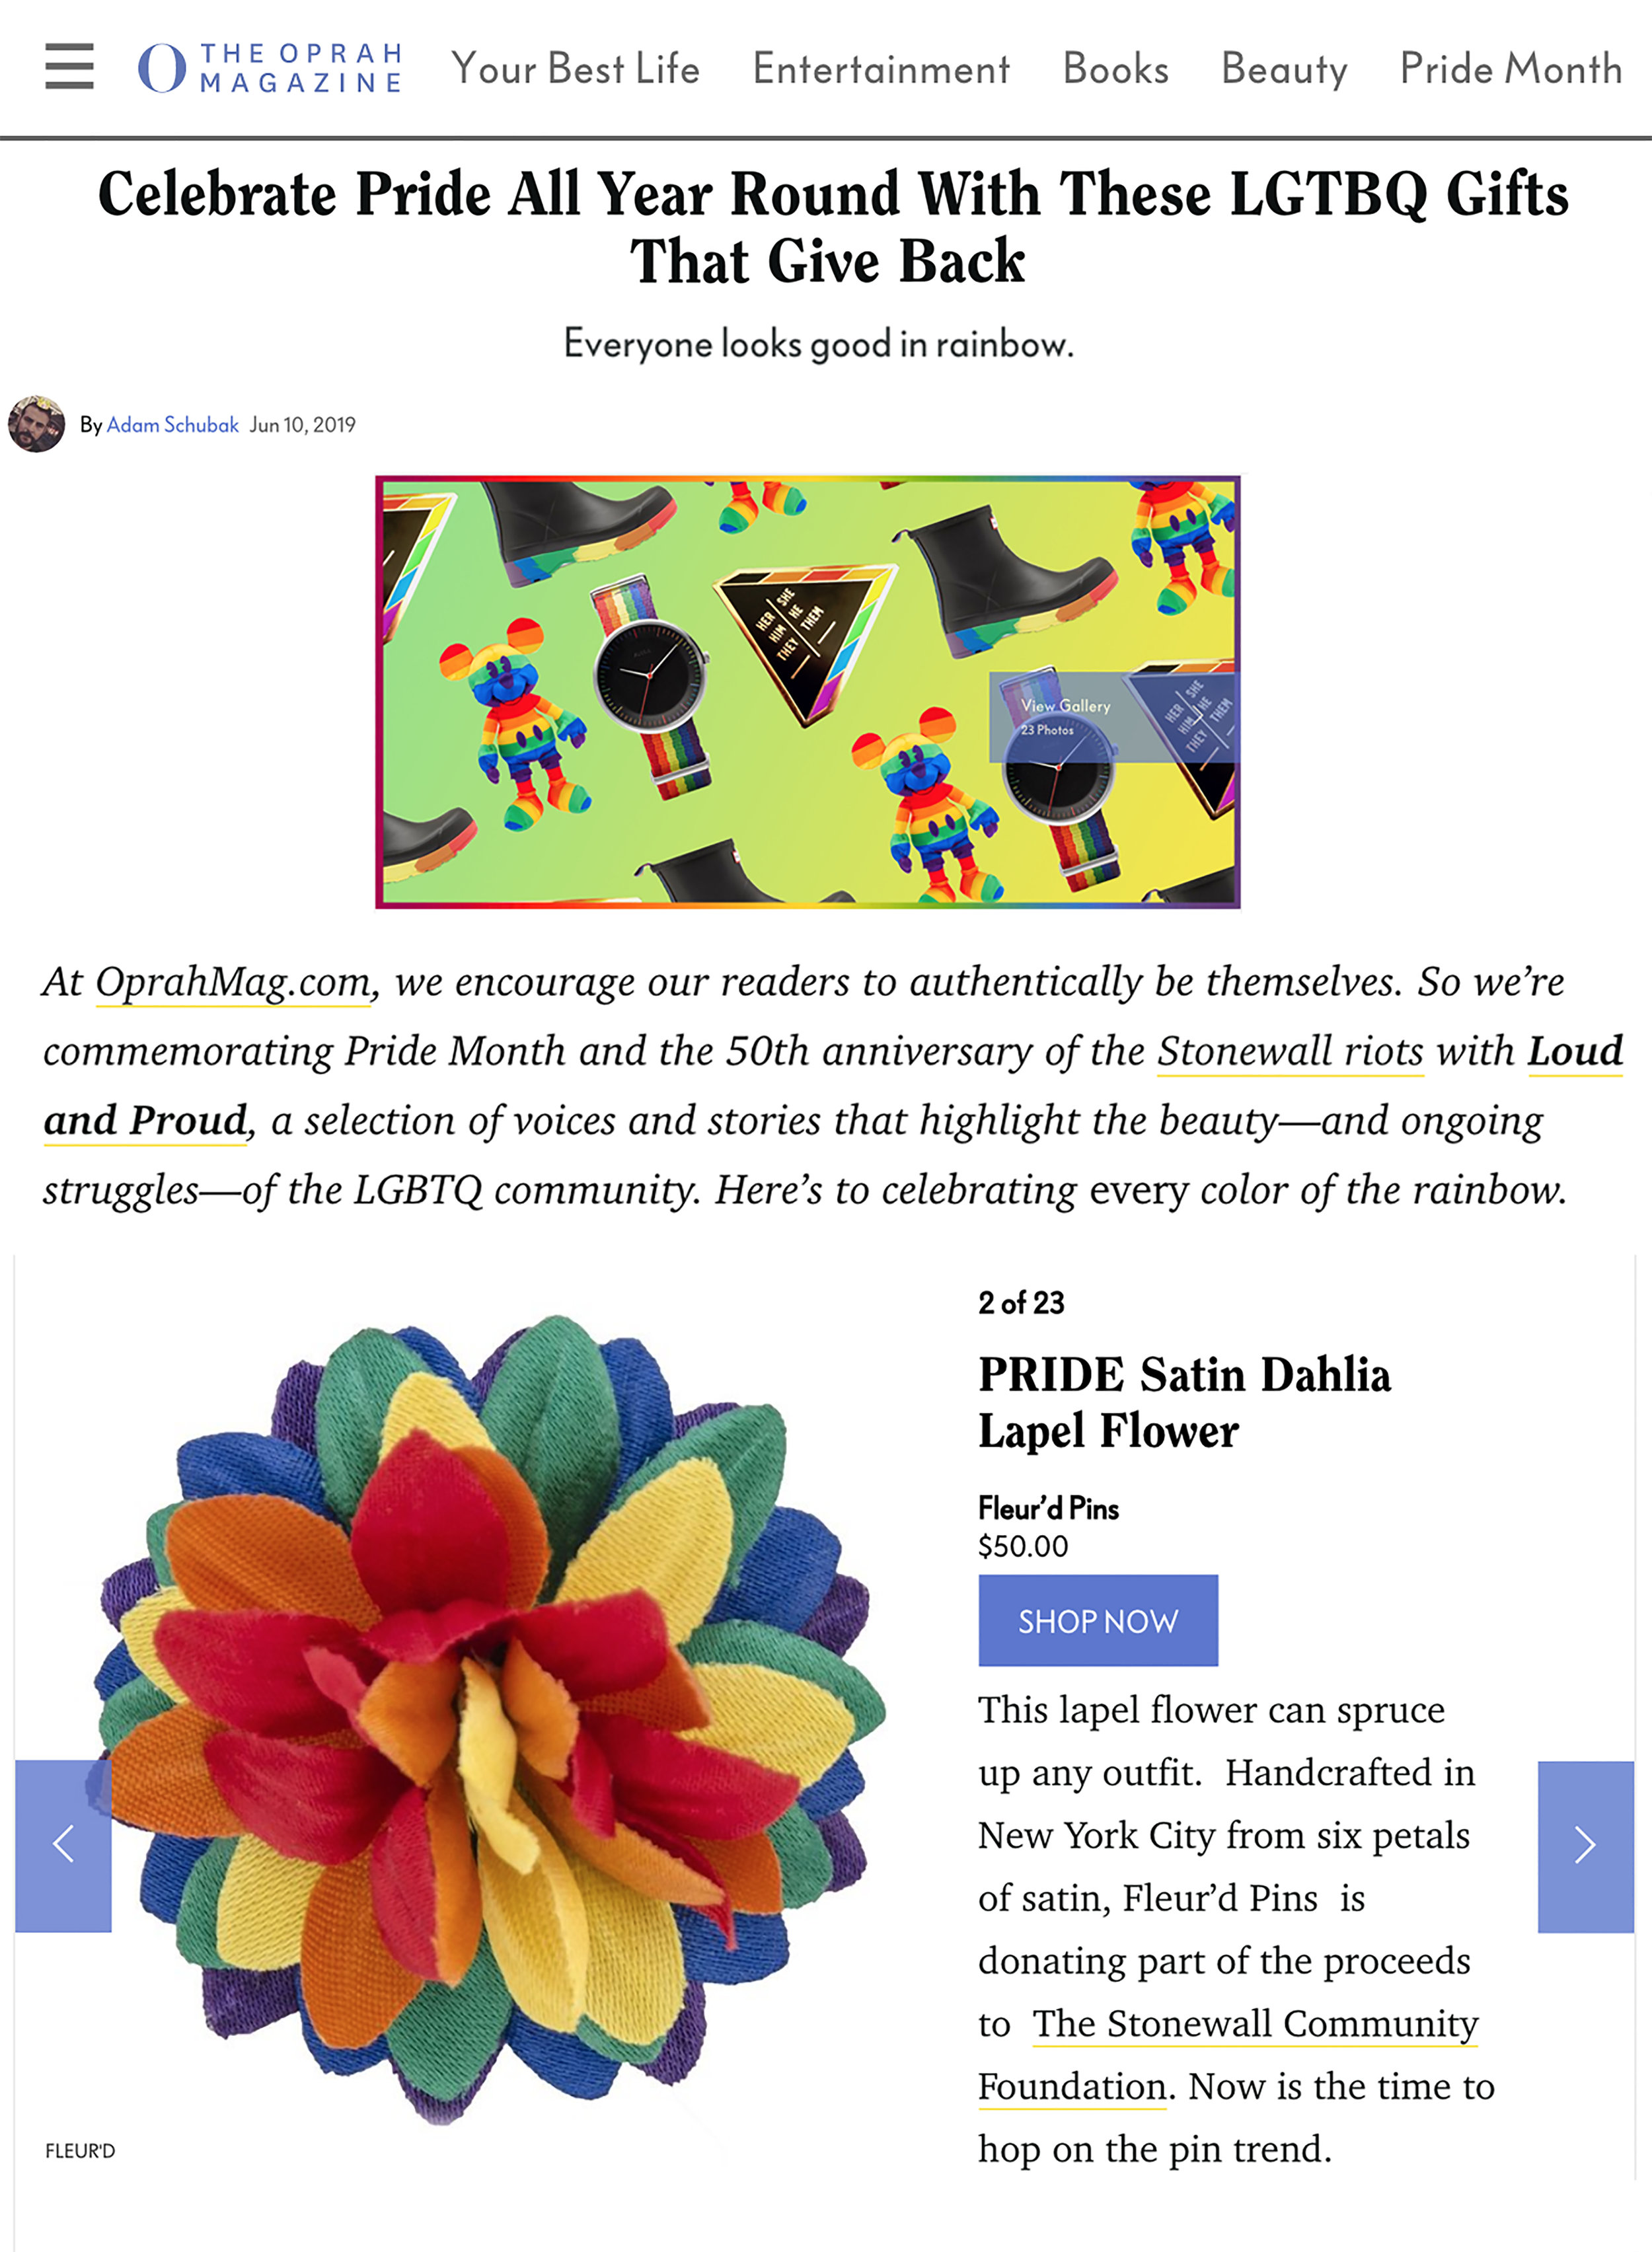 Fleur'd Pins Pride Satin Dahlia featured in O Magazine - June 20th 2019.jpg